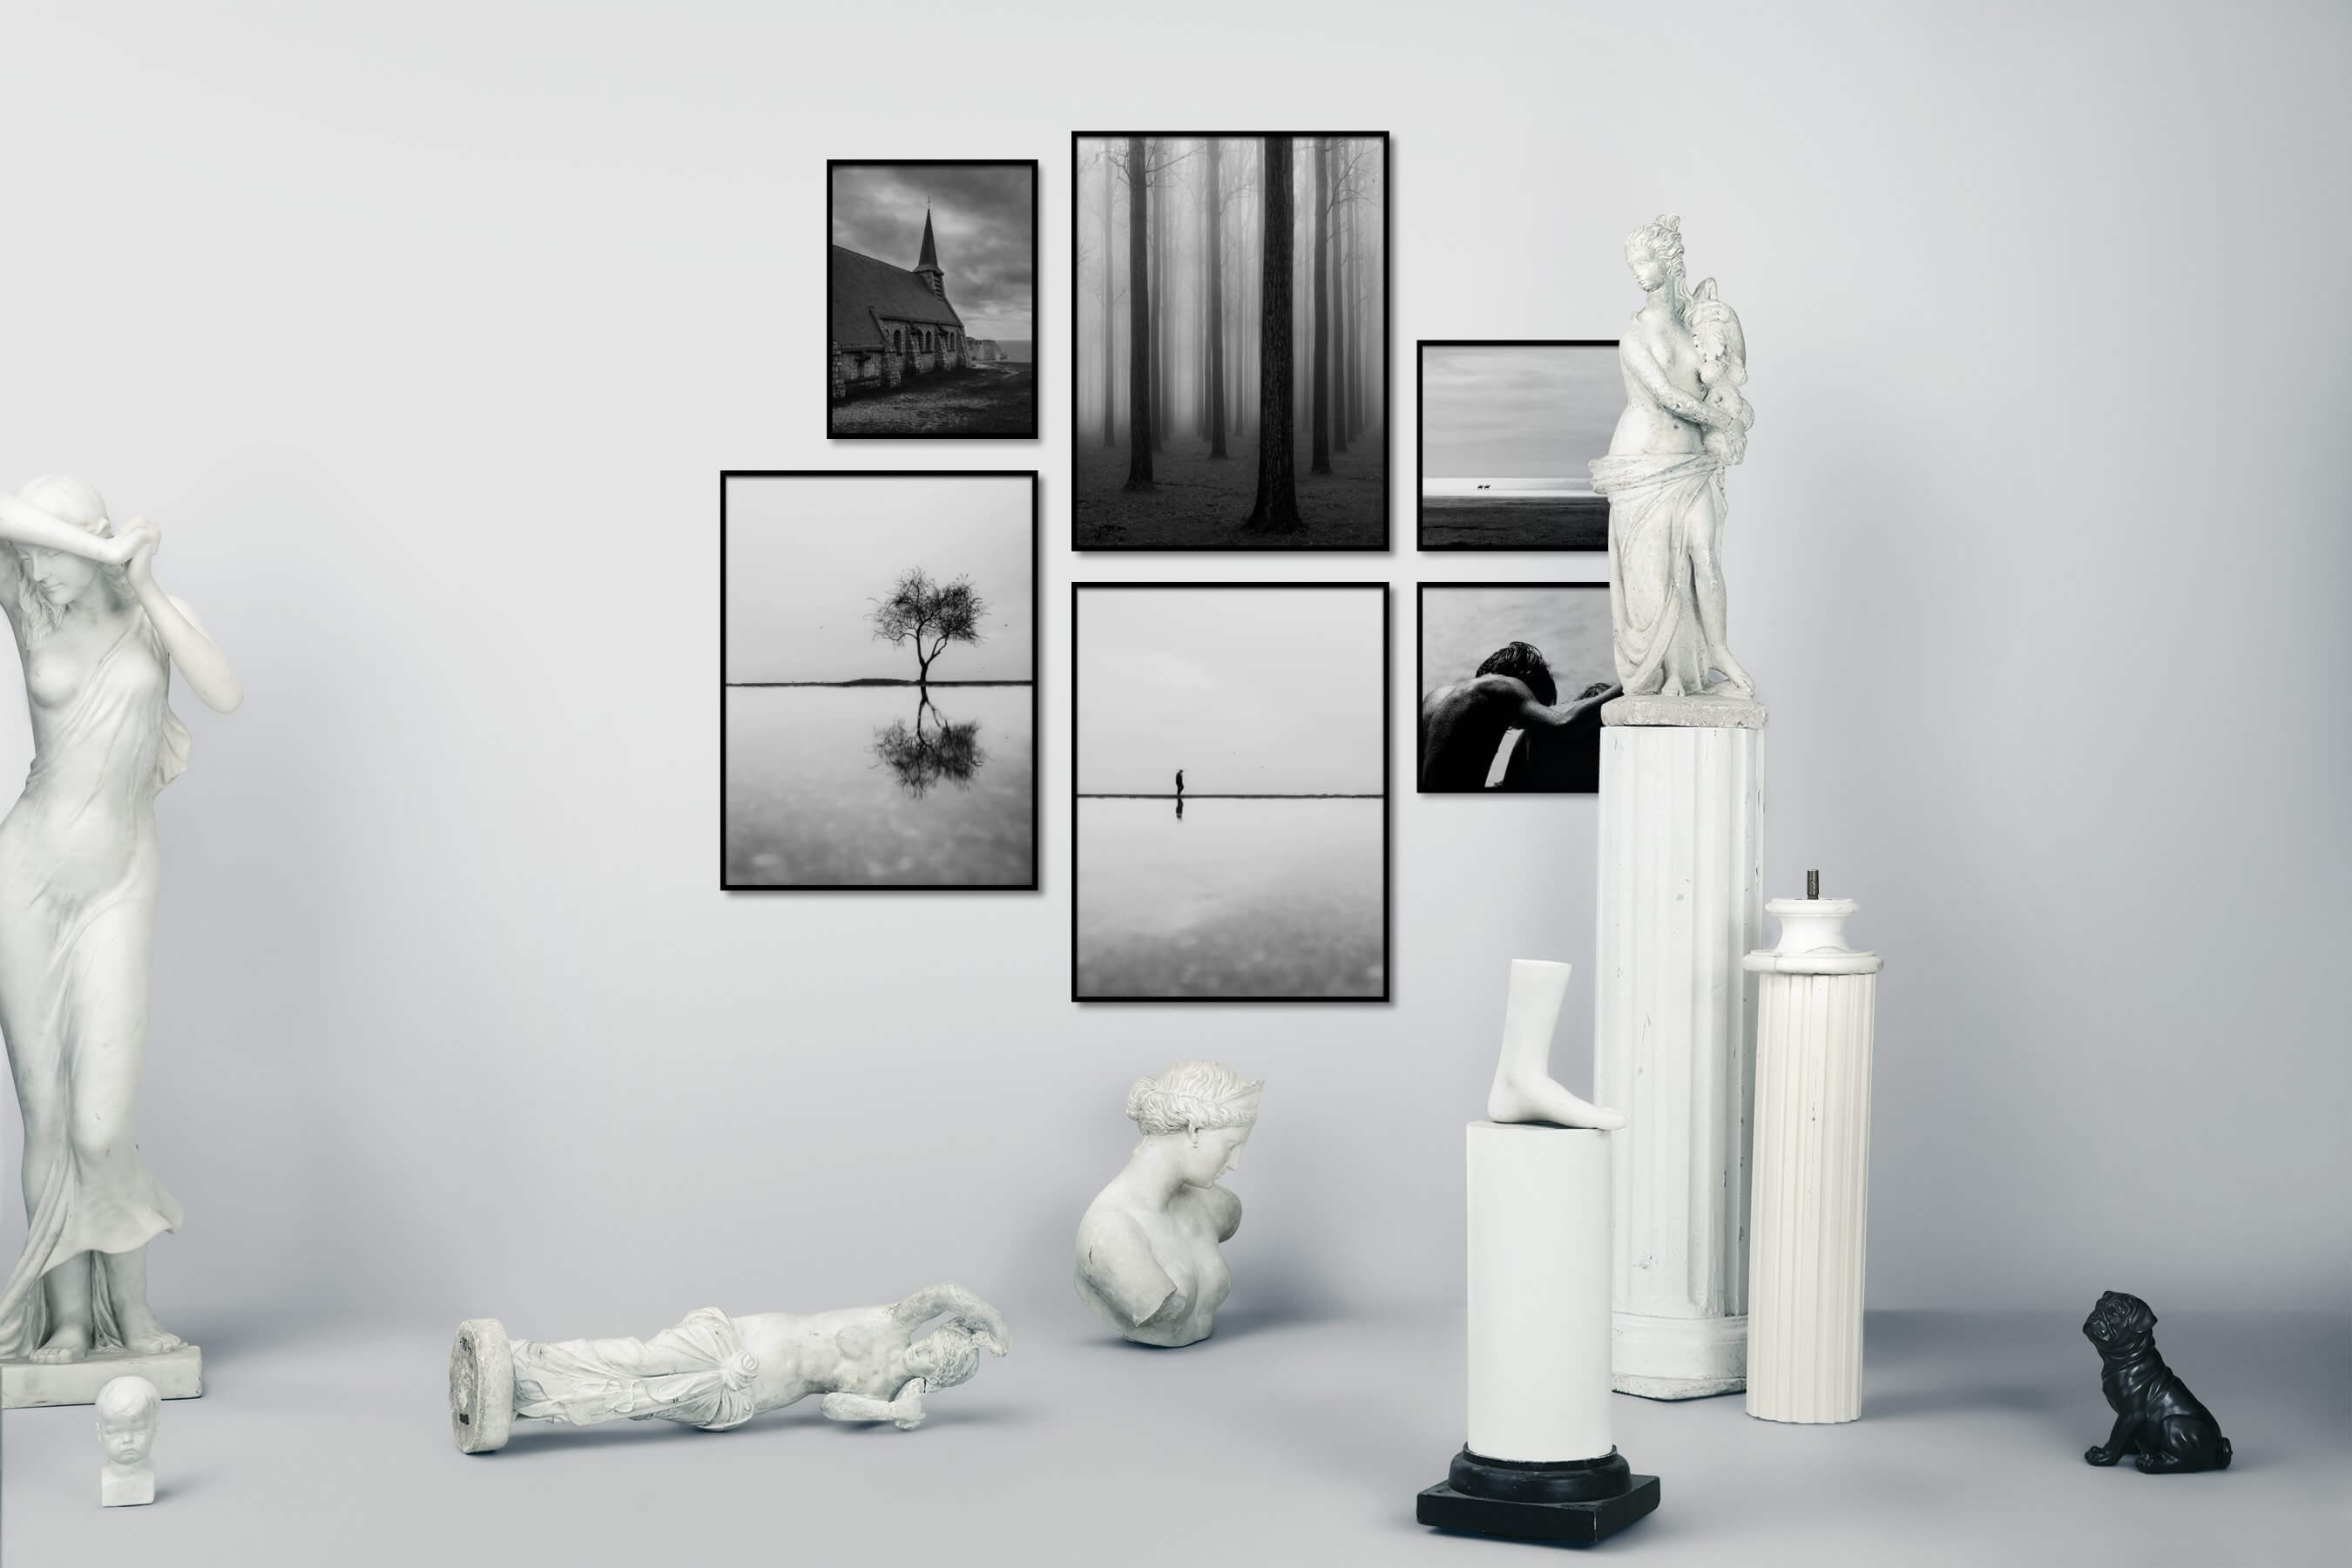 Gallery wall idea with six framed pictures arranged on a wall depicting Black & White, Country Life, Nature, For the Minimalist, Mindfulness, For the Moderate, and Beach & Water